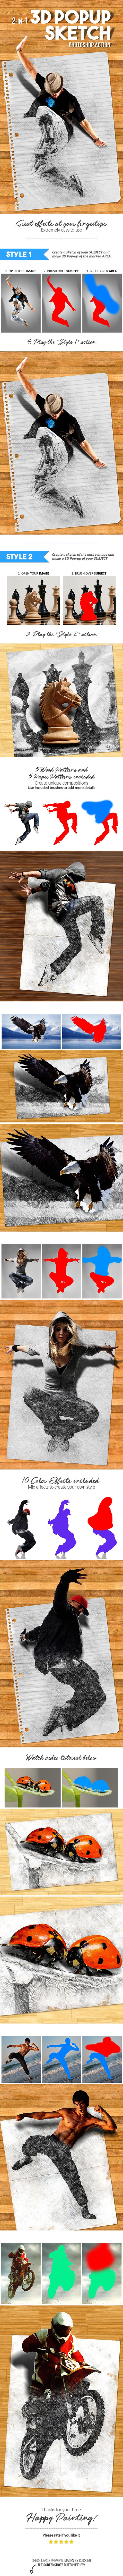 3D Popup Sketch Photoshop Action — Photoshop ATN #real #realistic • Download ➝ https://graphicriver.net/item/3d-popup-sketch-photoshop-action/19664815?ref=pxcr